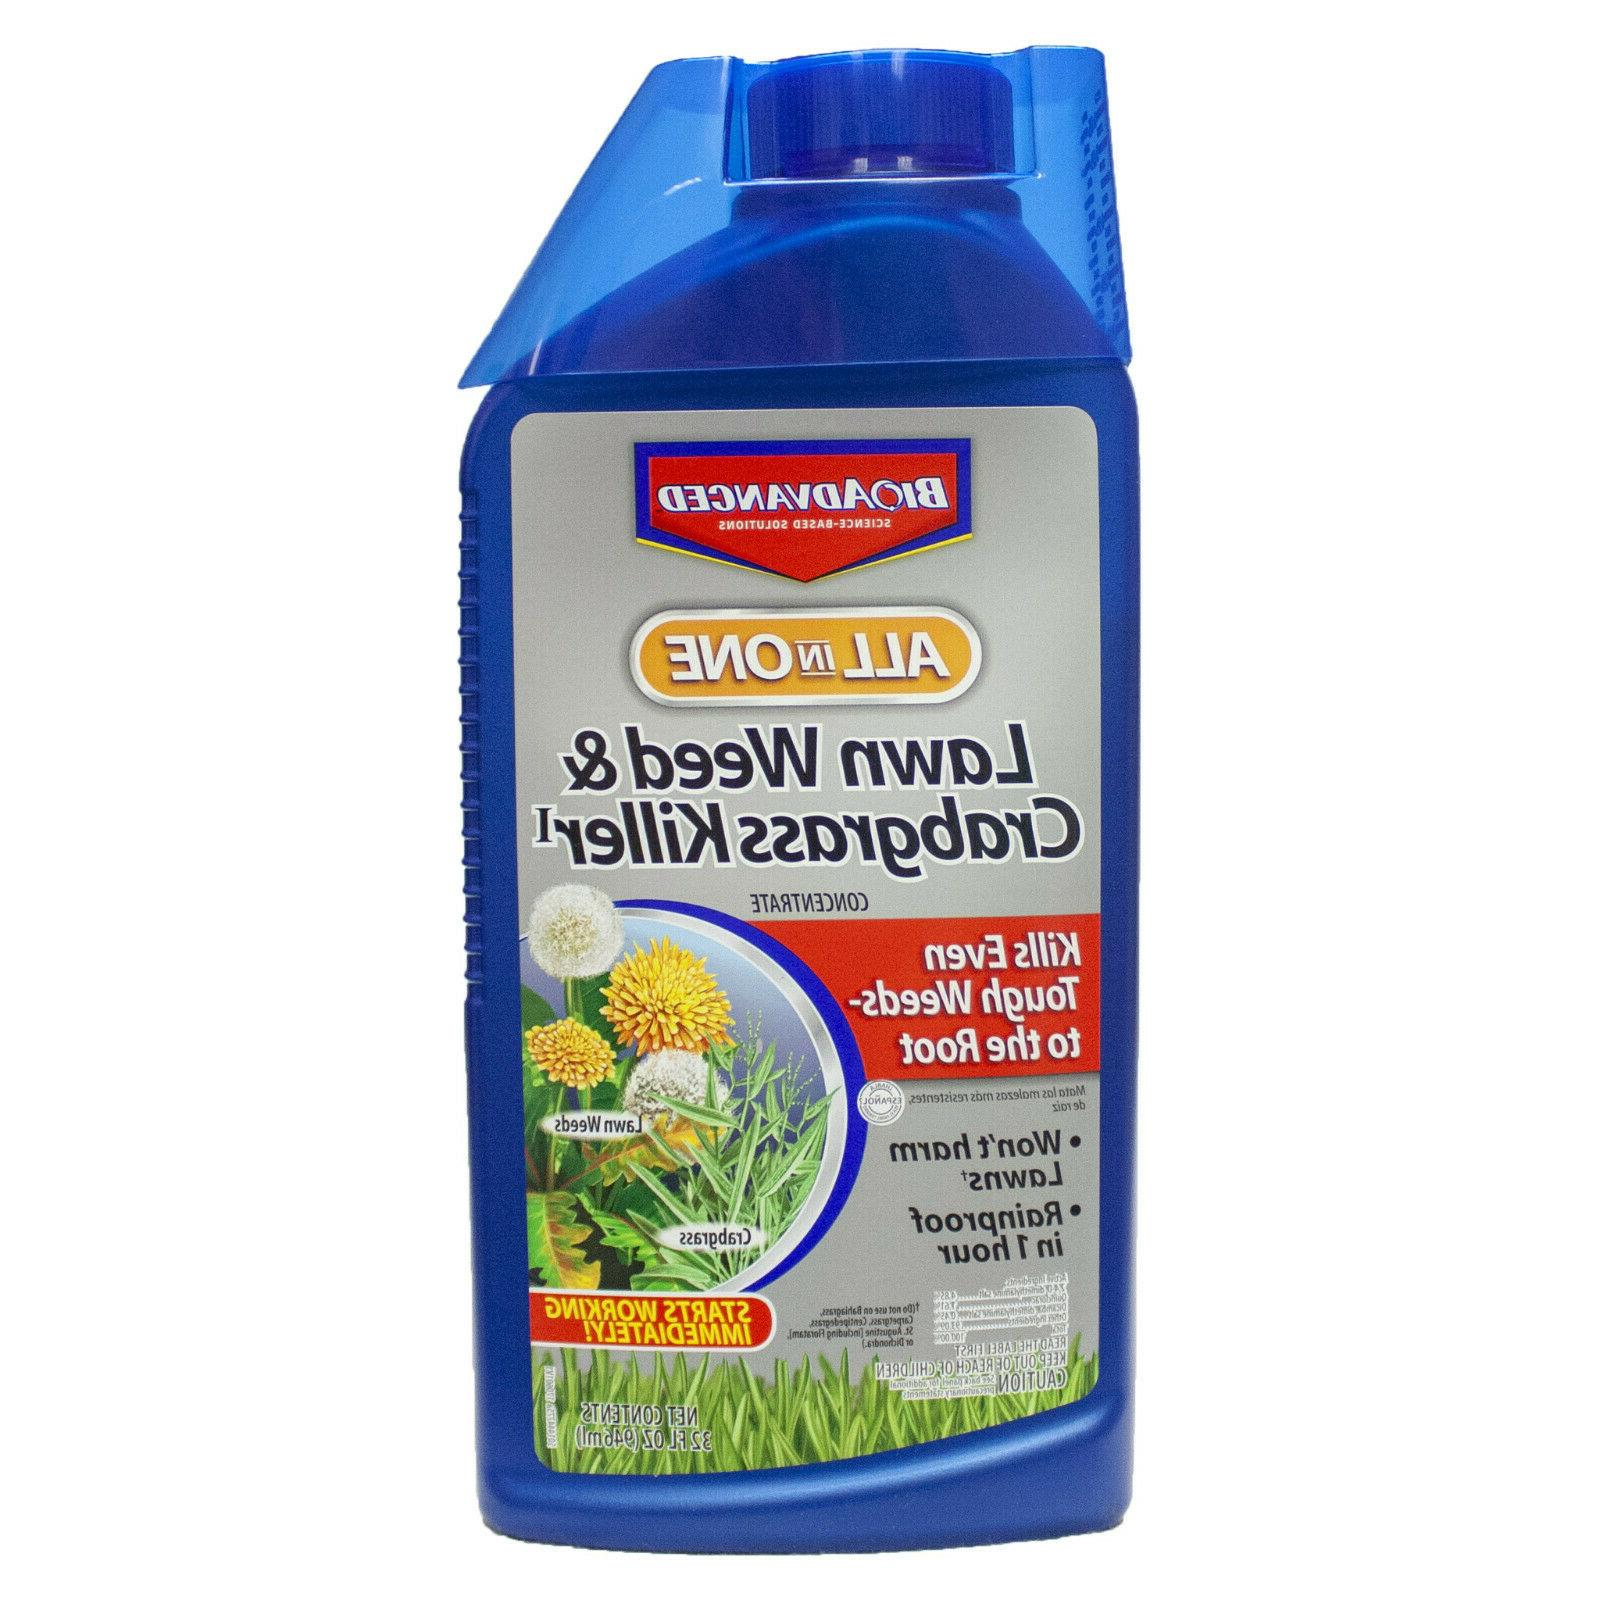 lawn weed crabgrass killer concentrate rainproof grass